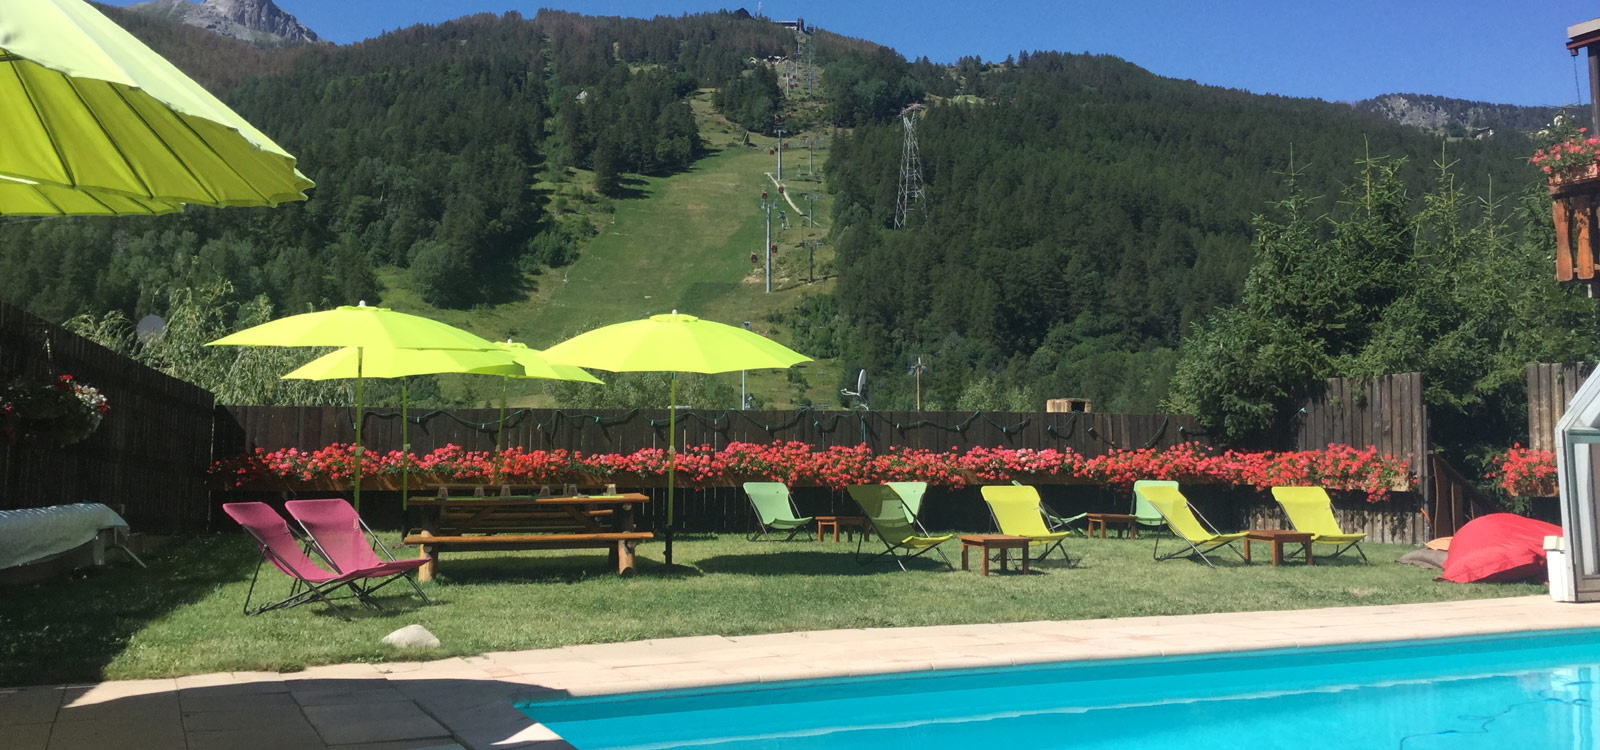 Plein Sud hotel open in the summer with heated swimming pool